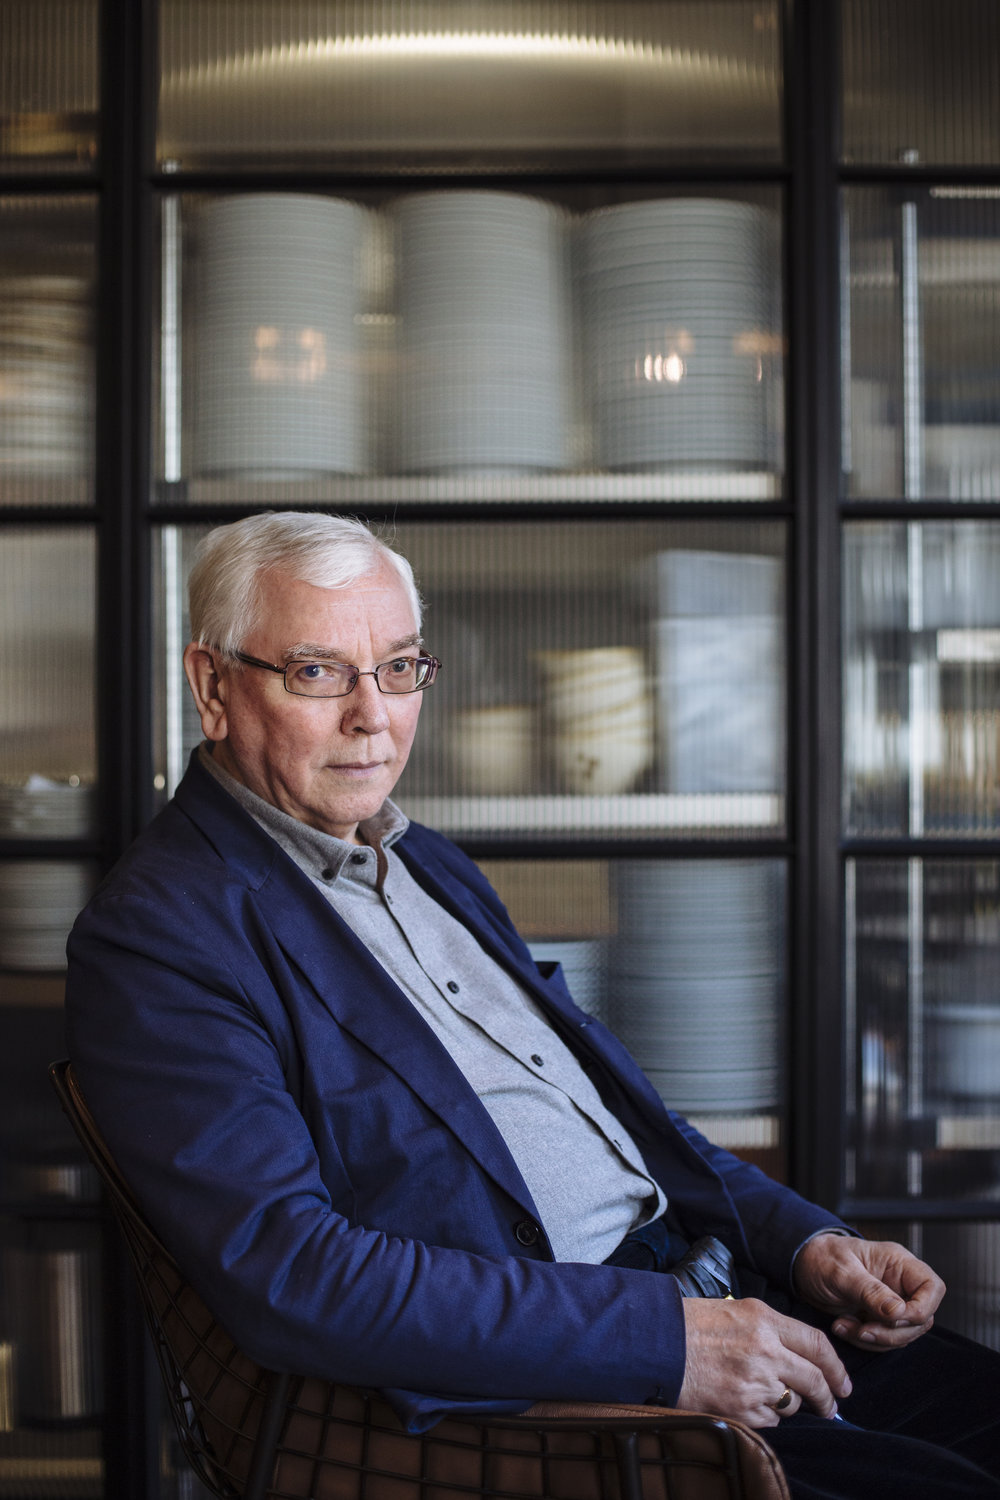 British director Terence Davies poses for a photograph inside the Stephen St Kitchen at the British Film Institute, London, England, Wednesday, May 4, 2016. (David Azia for The New York Times)